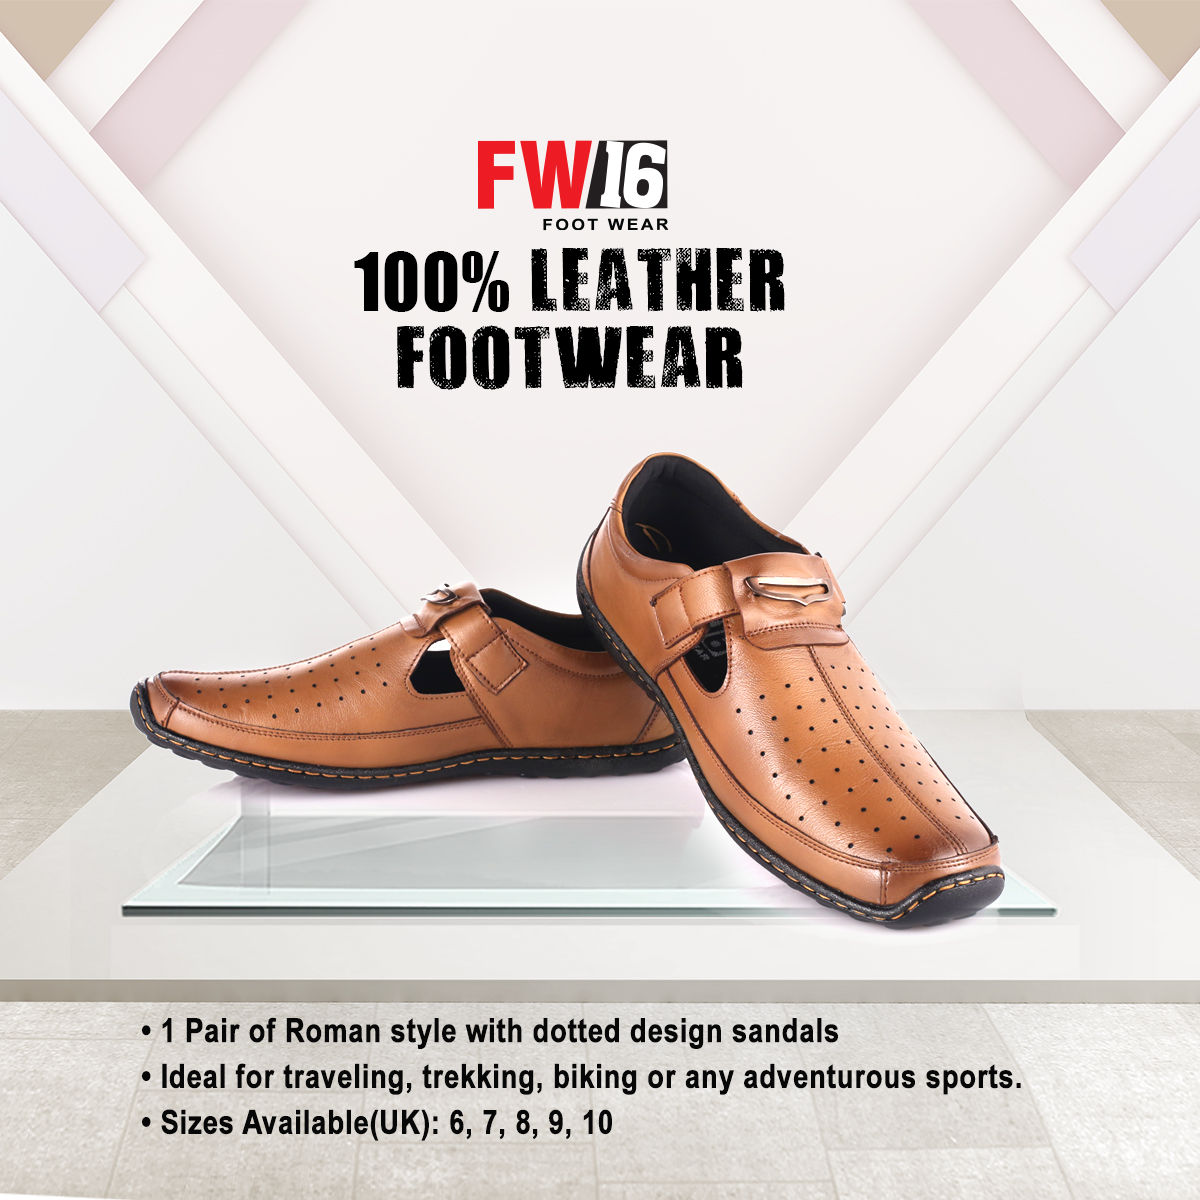 3f4160b38c170 Buy FW16 100% Leather Footwear Online at Best Price in India on Naaptol.com